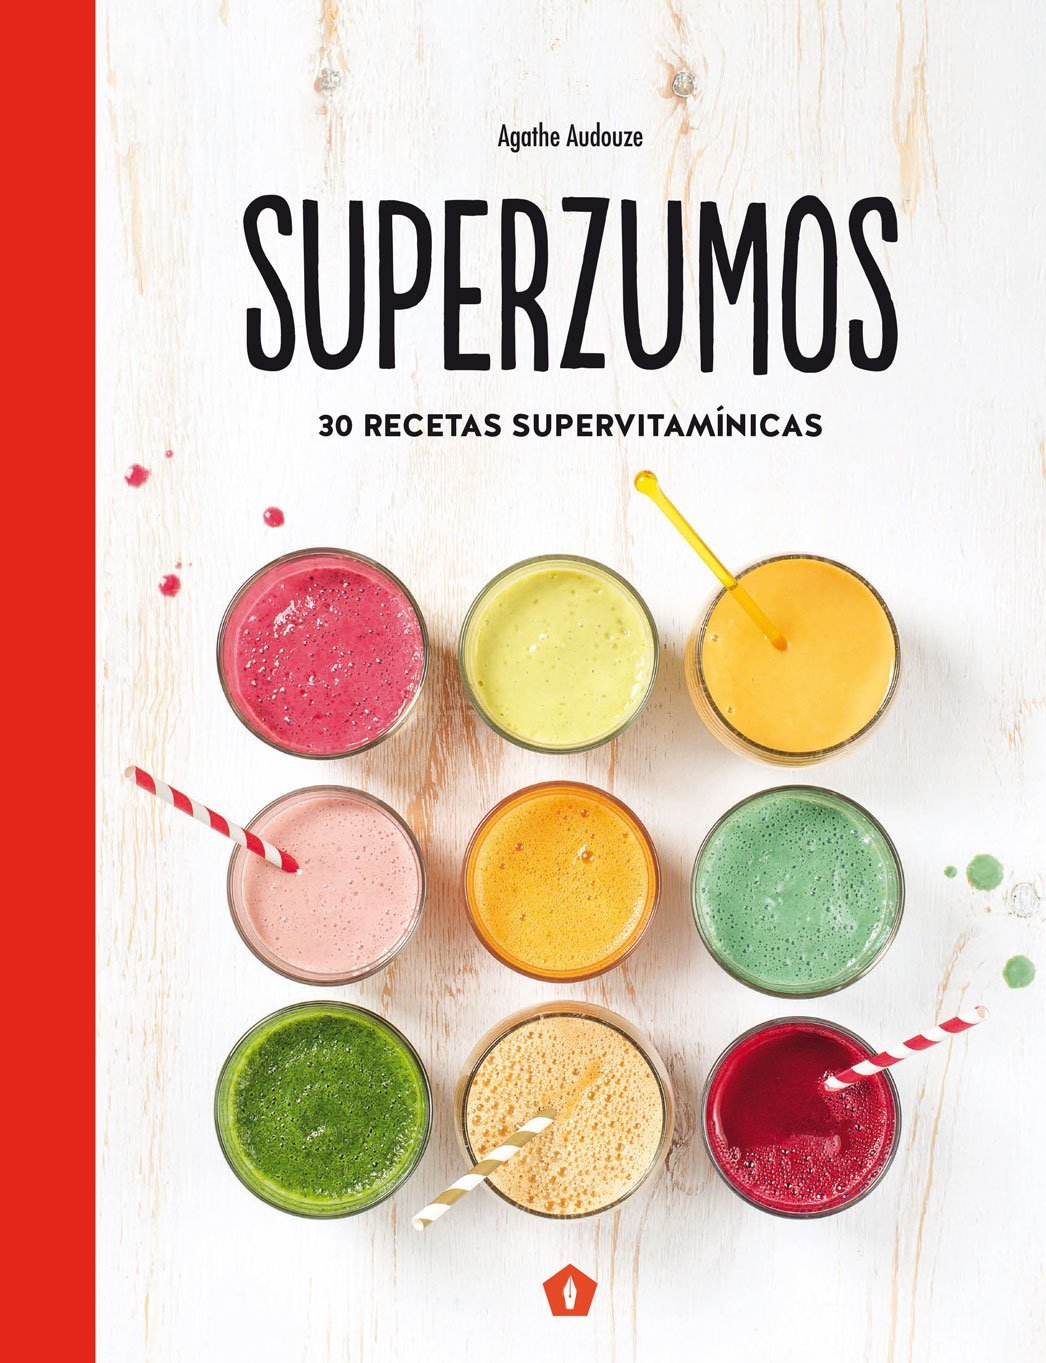 Amazon.com: Superzumos (Spanish Edition) (9788416407149): Agathe Audouze: Books